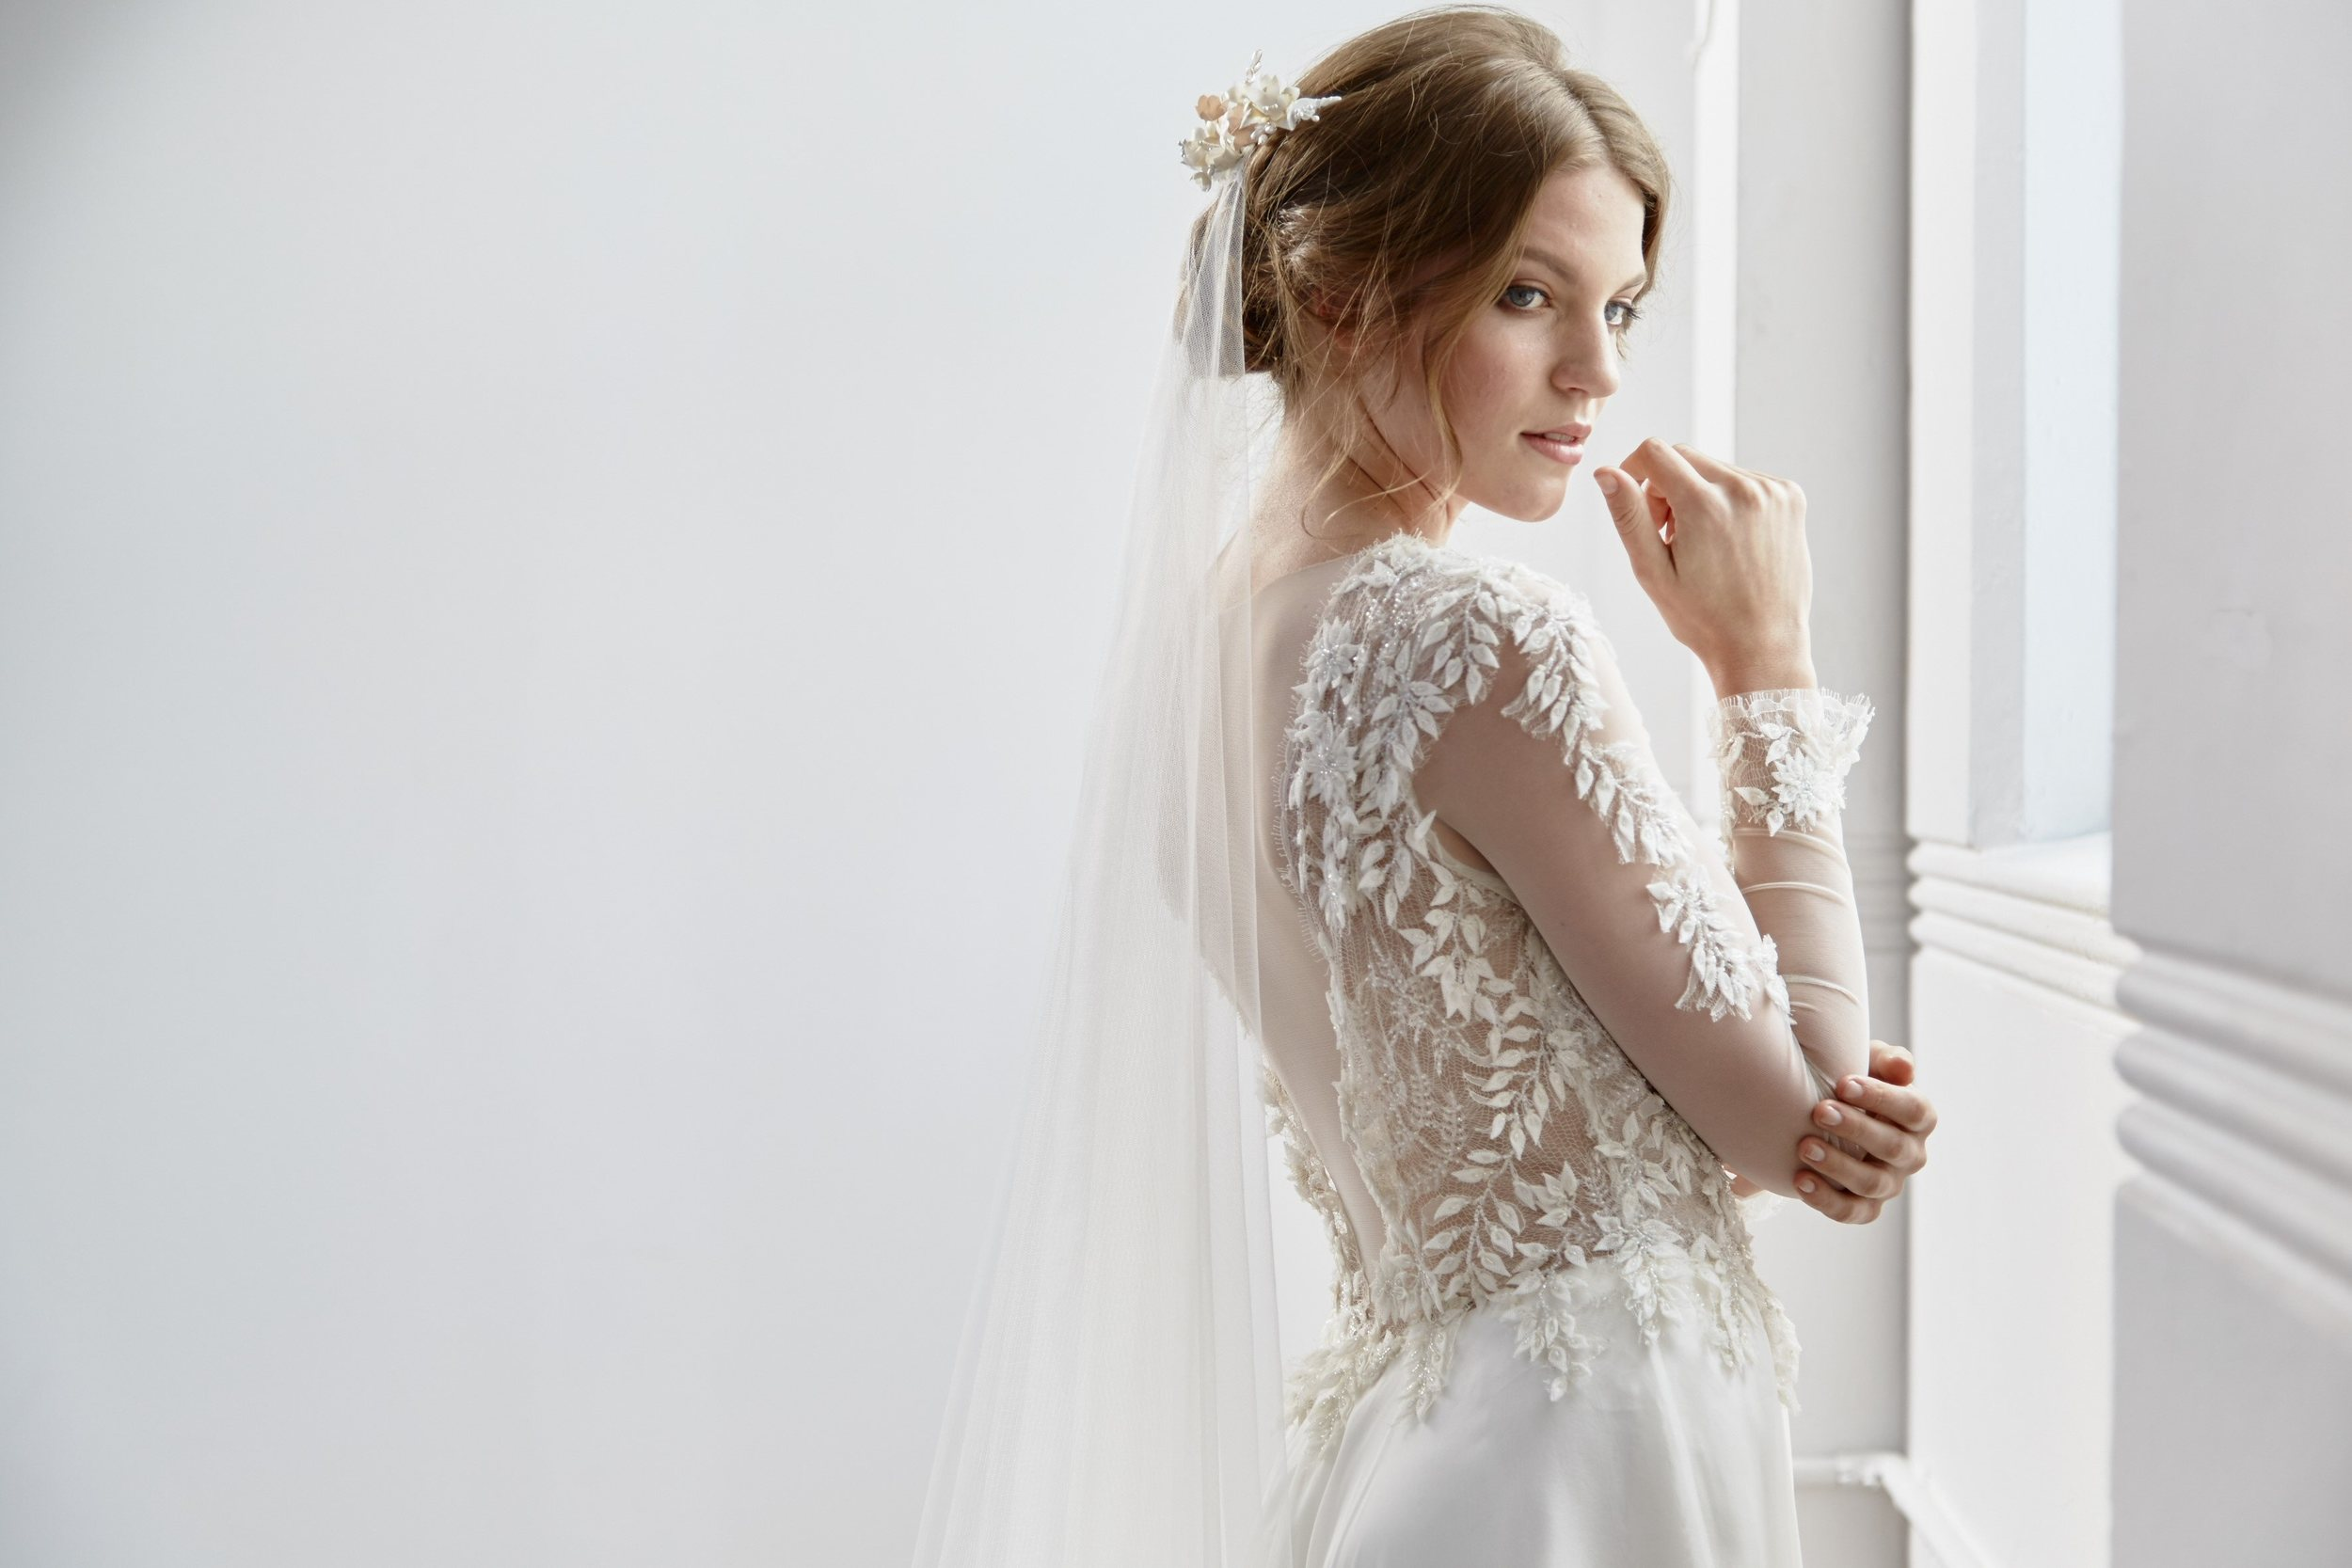 Willow bridal gown design by Tanya Anic